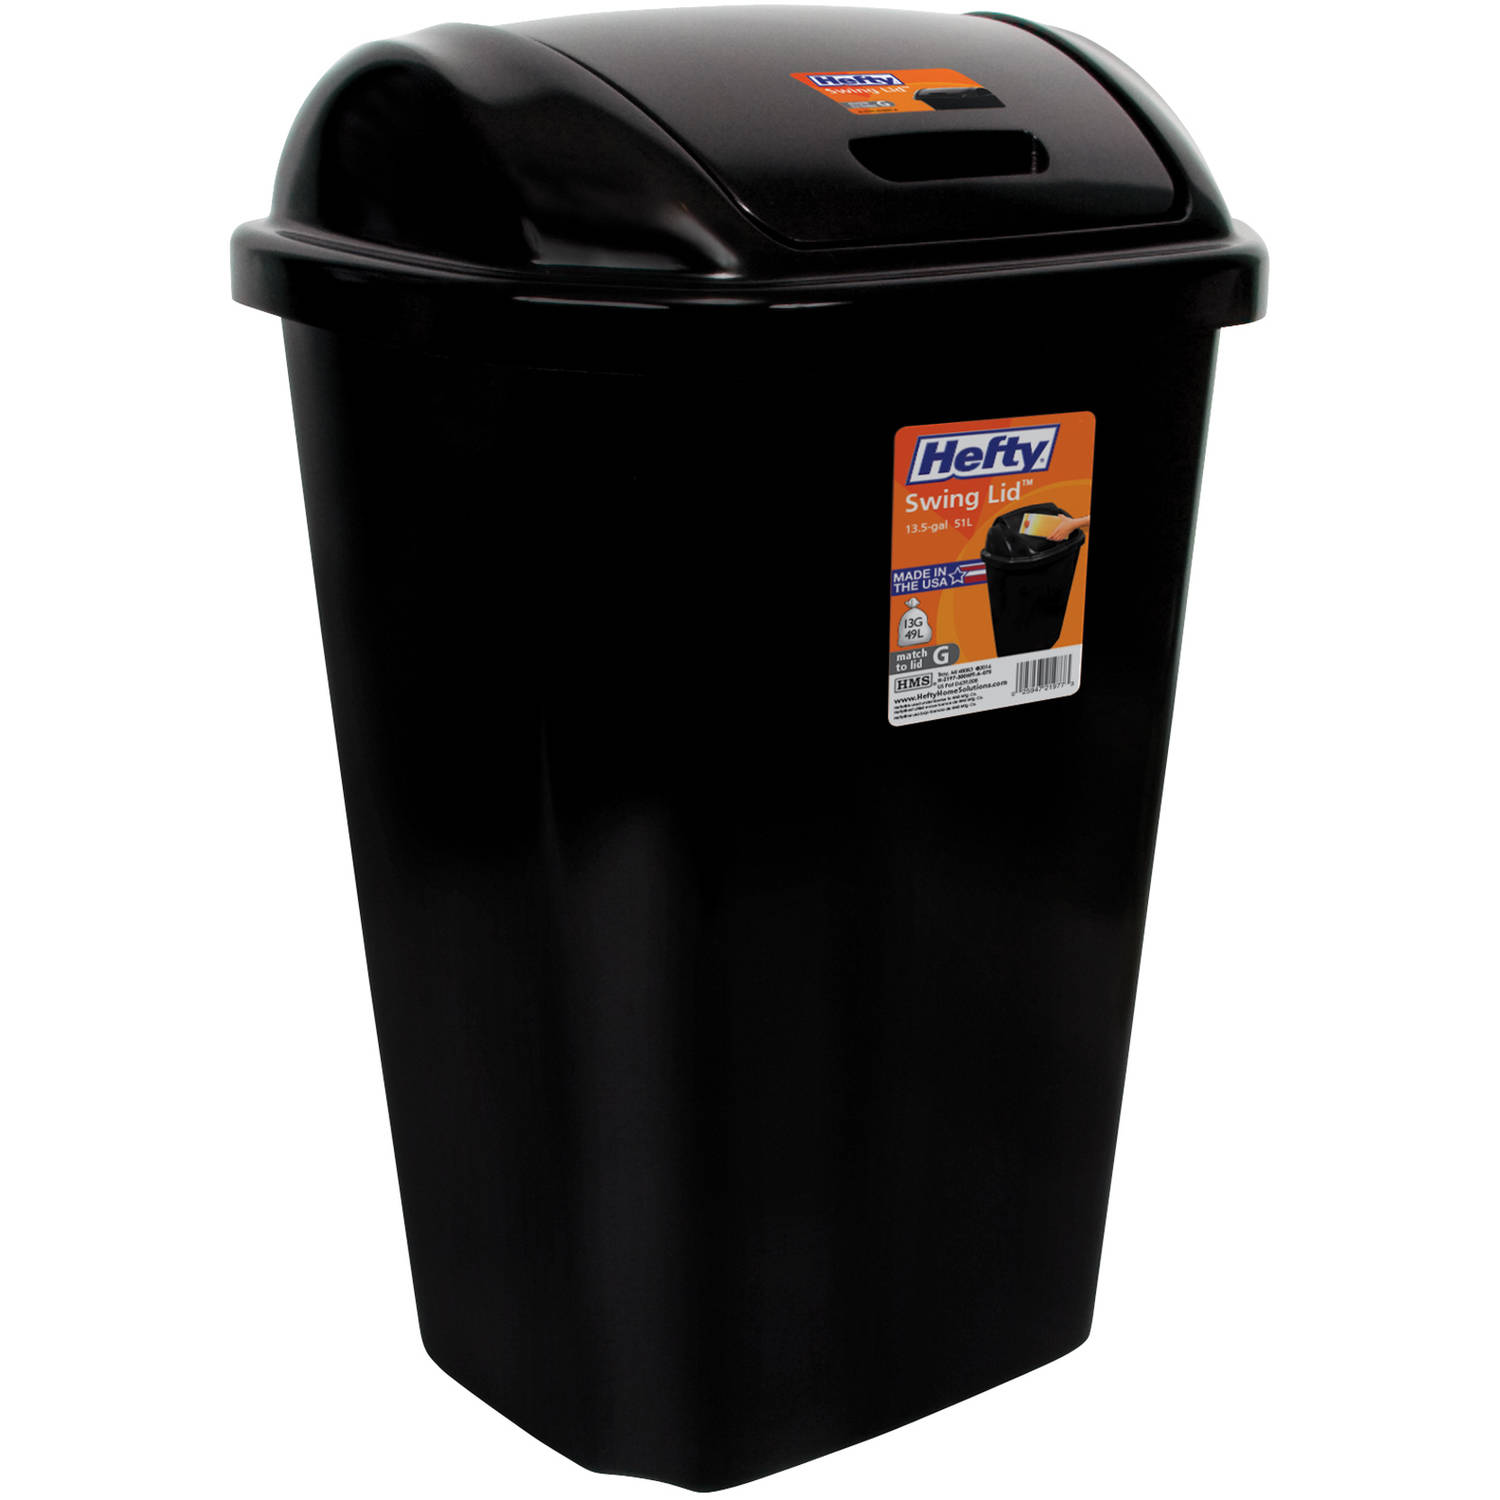 Hefty Swing Lid 135 Gal Trash Can Black Walmartcom